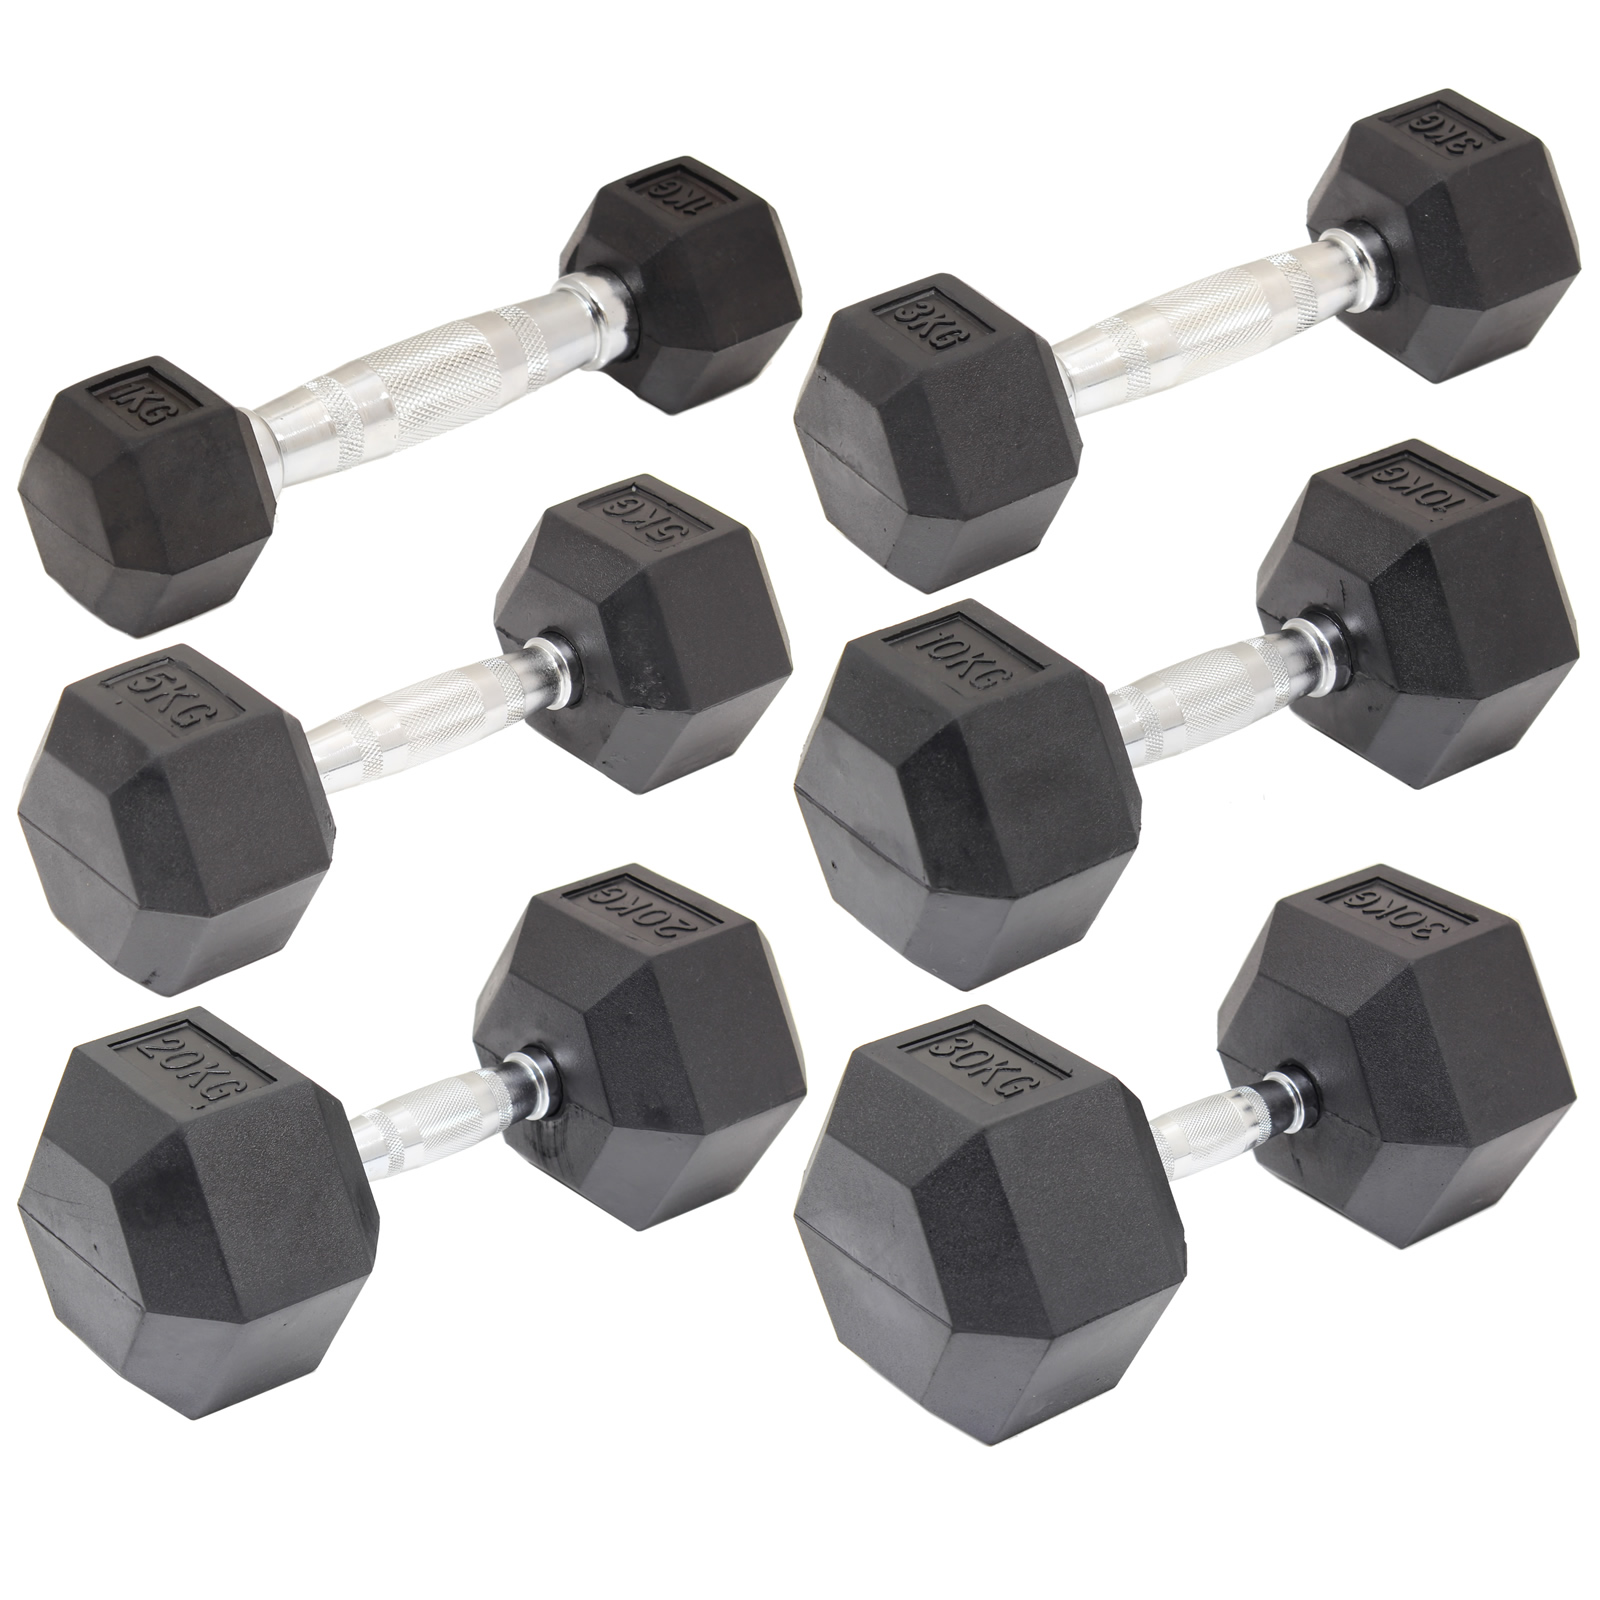 RUBBER DUMBBELL HEX WEIGHTS BICEPS/WORKOUT/TRAINING 2-60KG DUMBELLS GYM FITNESS Enlarged Preview